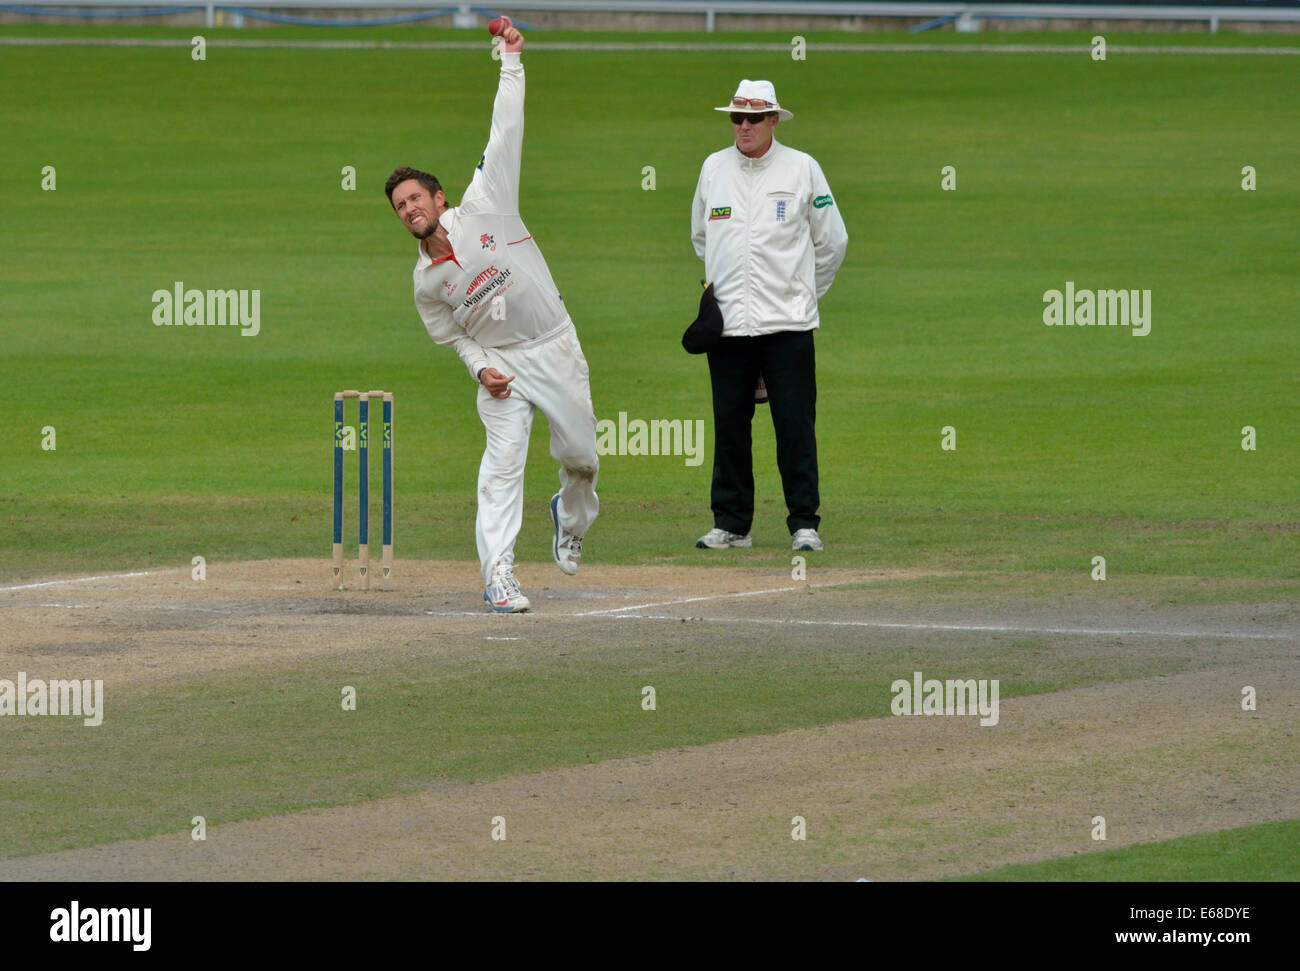 Emirates Old Trafford, Manchester, UK 18th August 2014 Simon Kerrigan (Lancashire) in action on the final day when - Stock Image